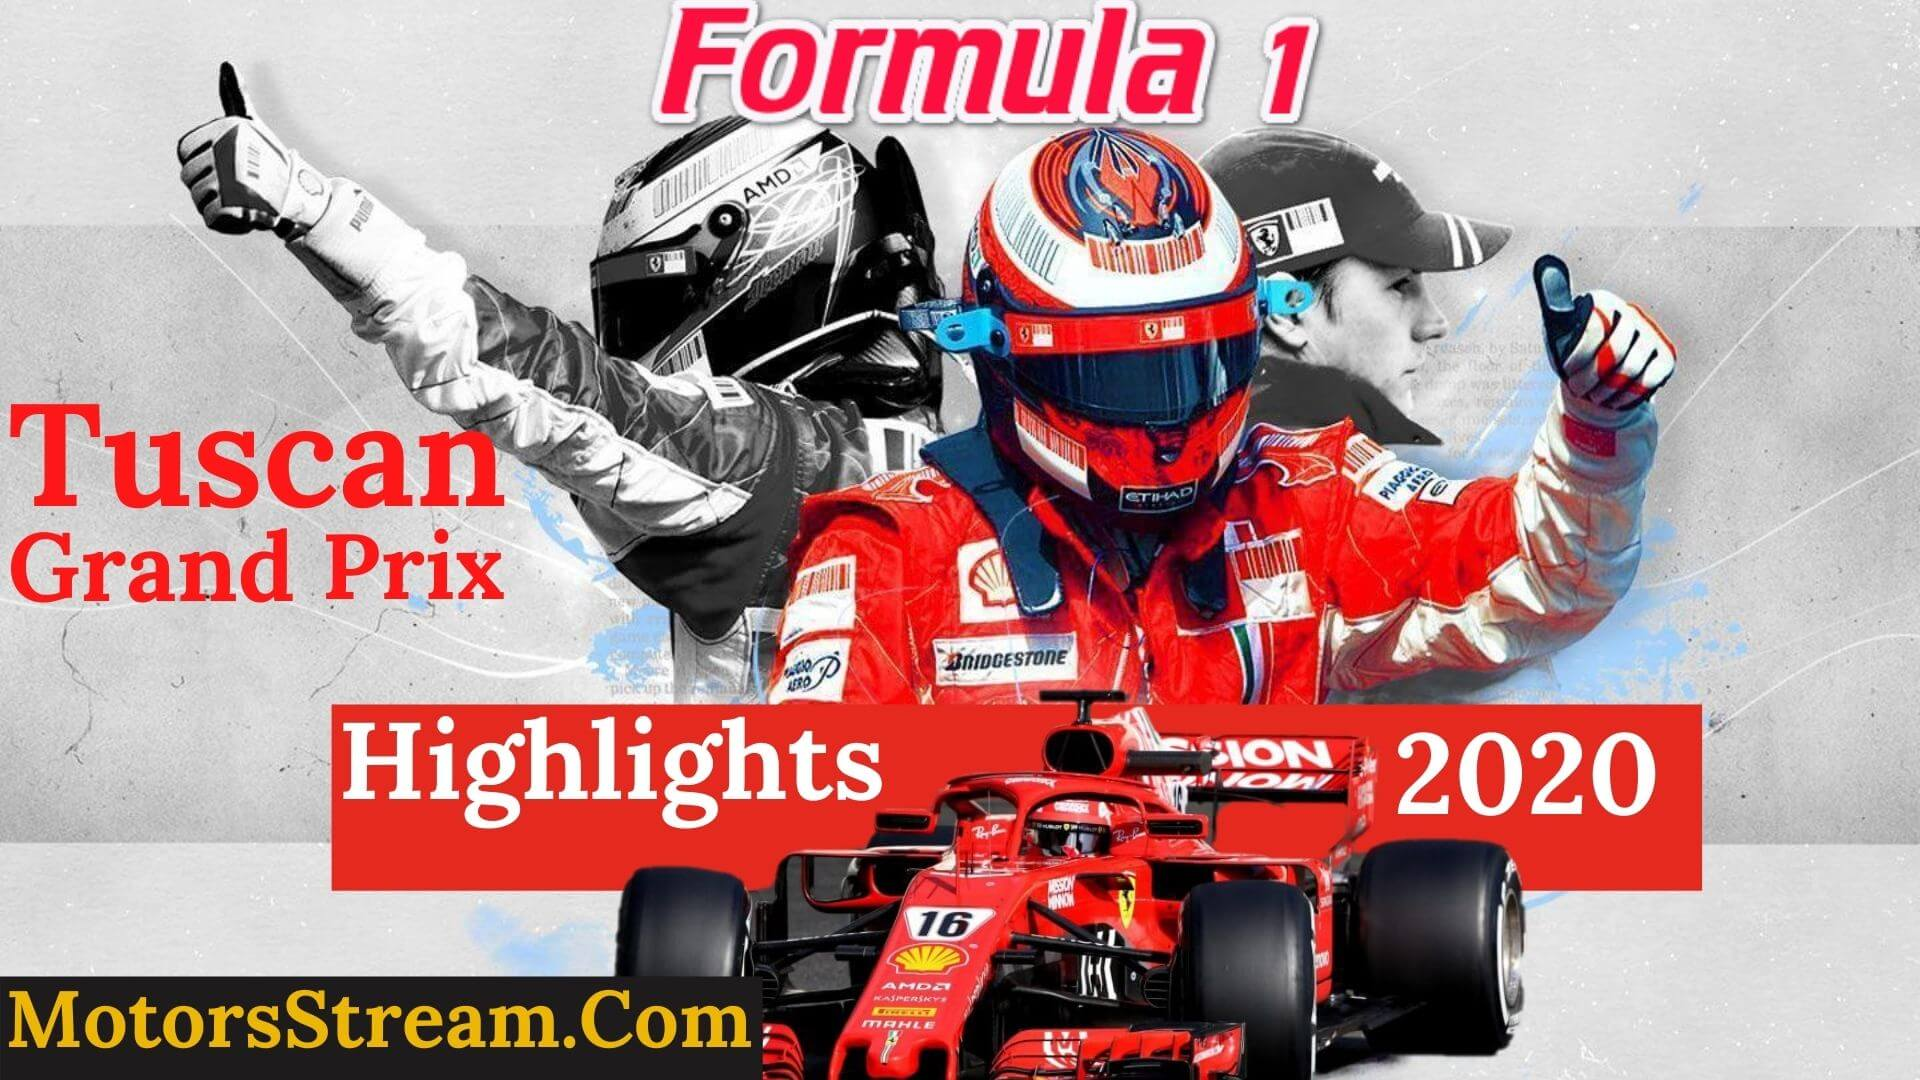 Tuscan Grand Prix Final Race Highlights 2020 Formula 1